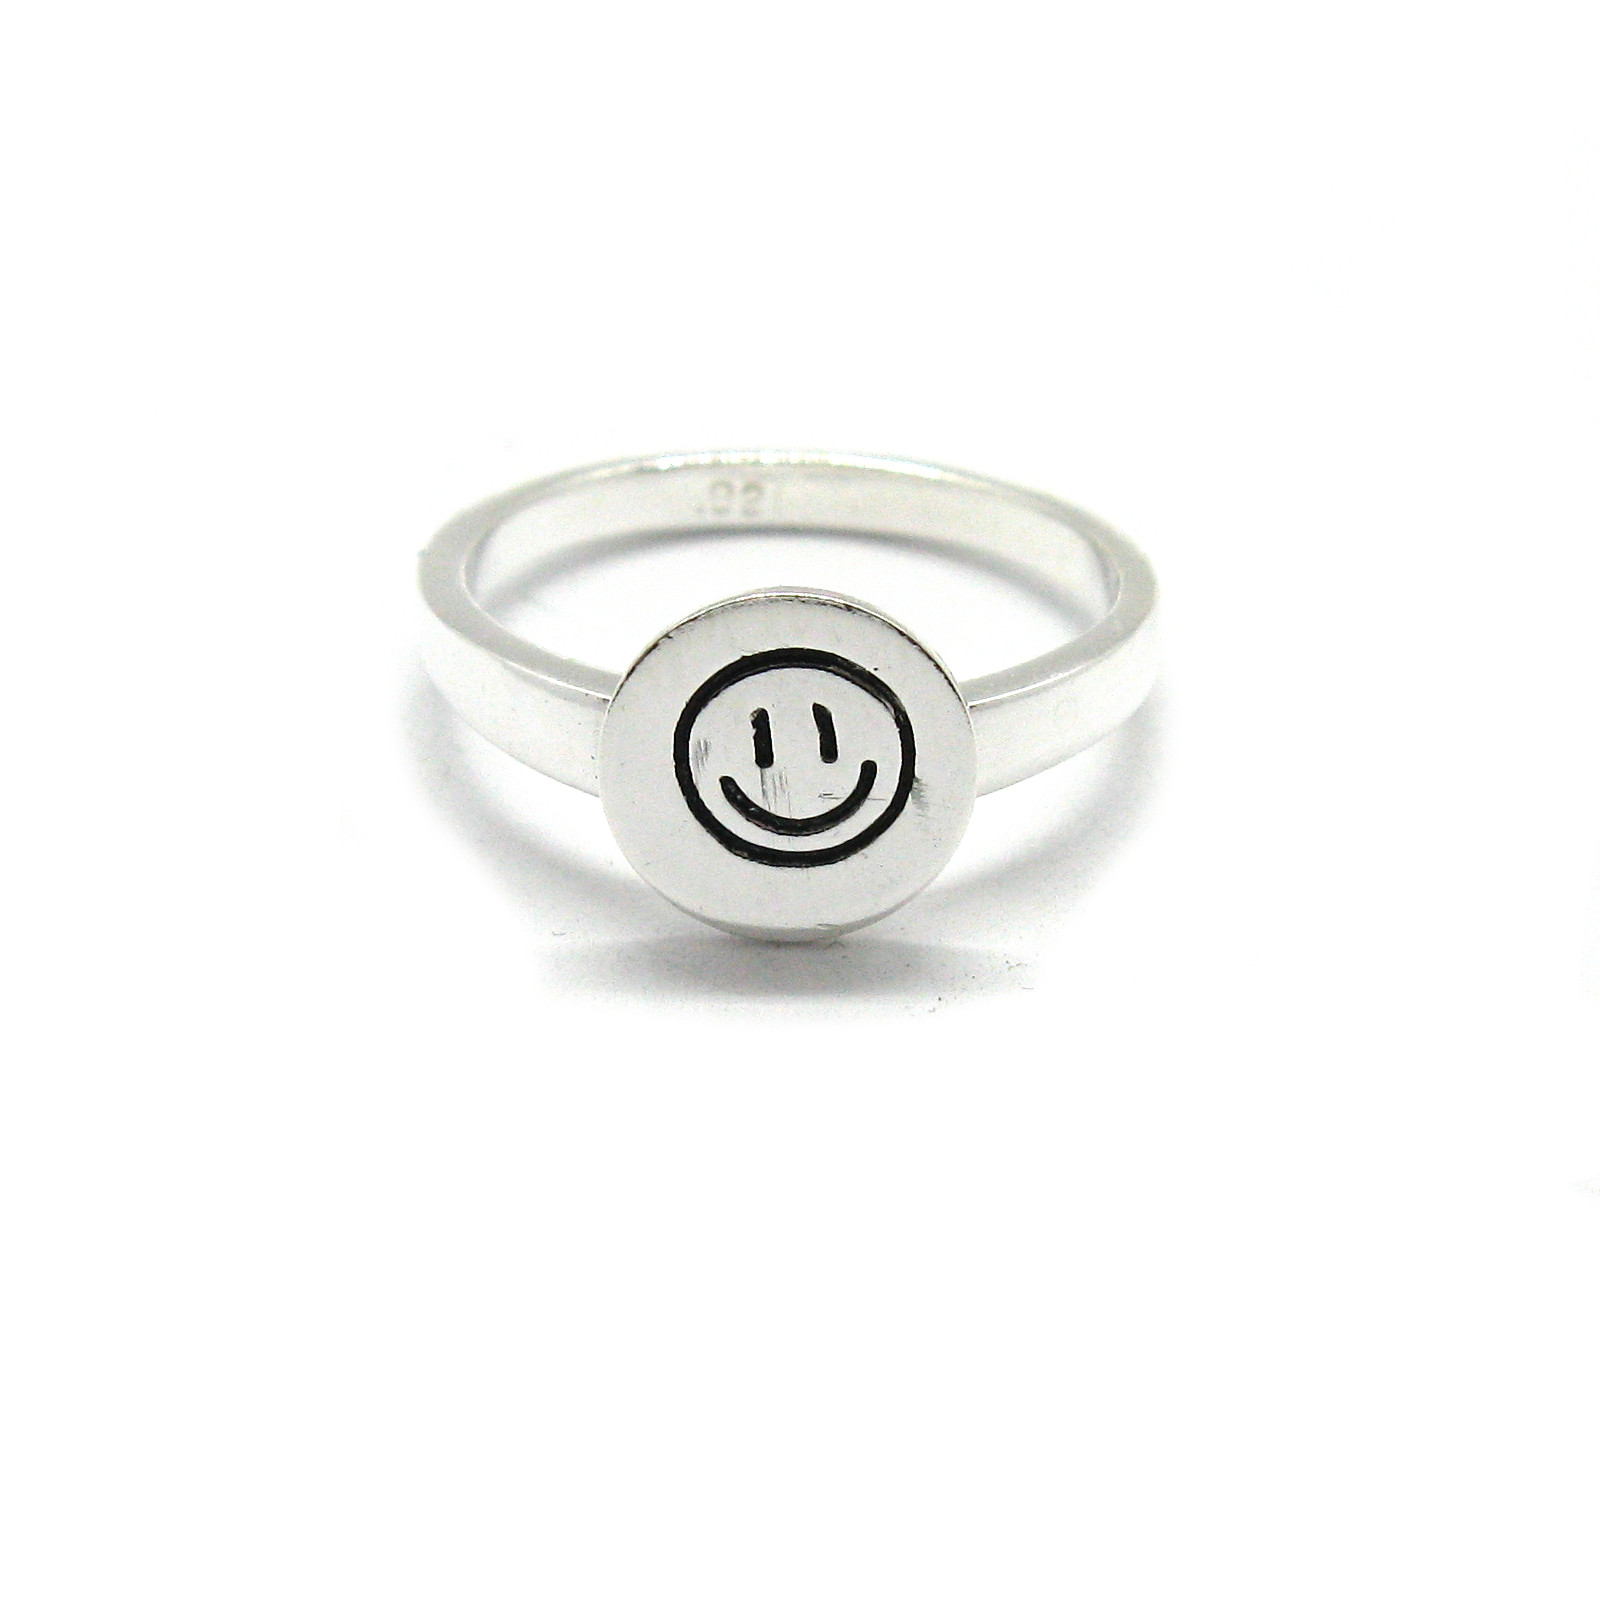 Silver ring - R001905